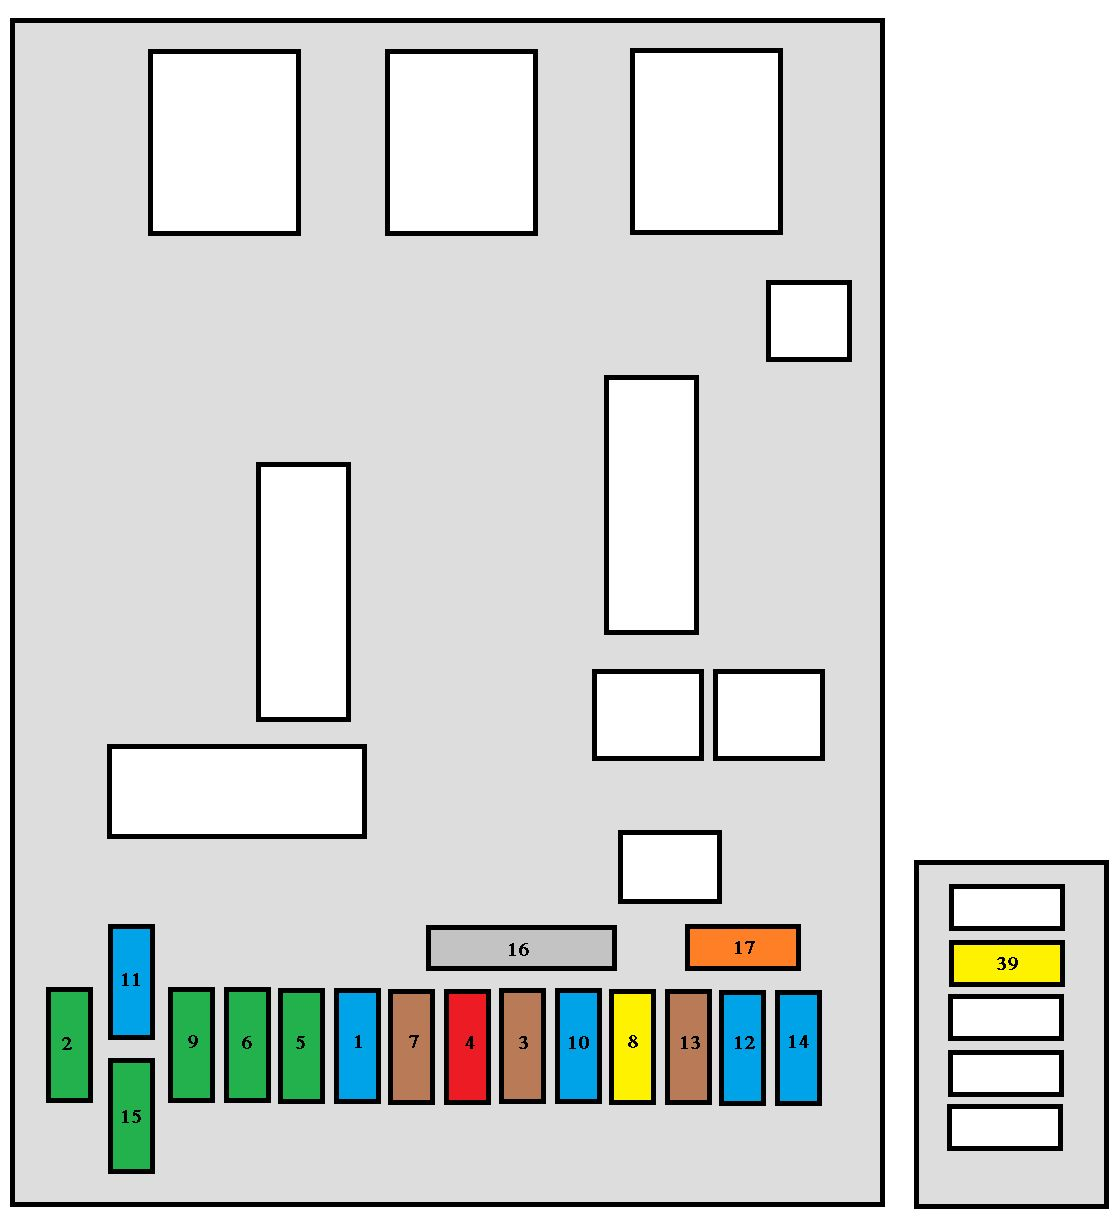 Citroen C3 Engine Fuse Box Diagram Simple Guide About Wiring Peugeot 207 Layout